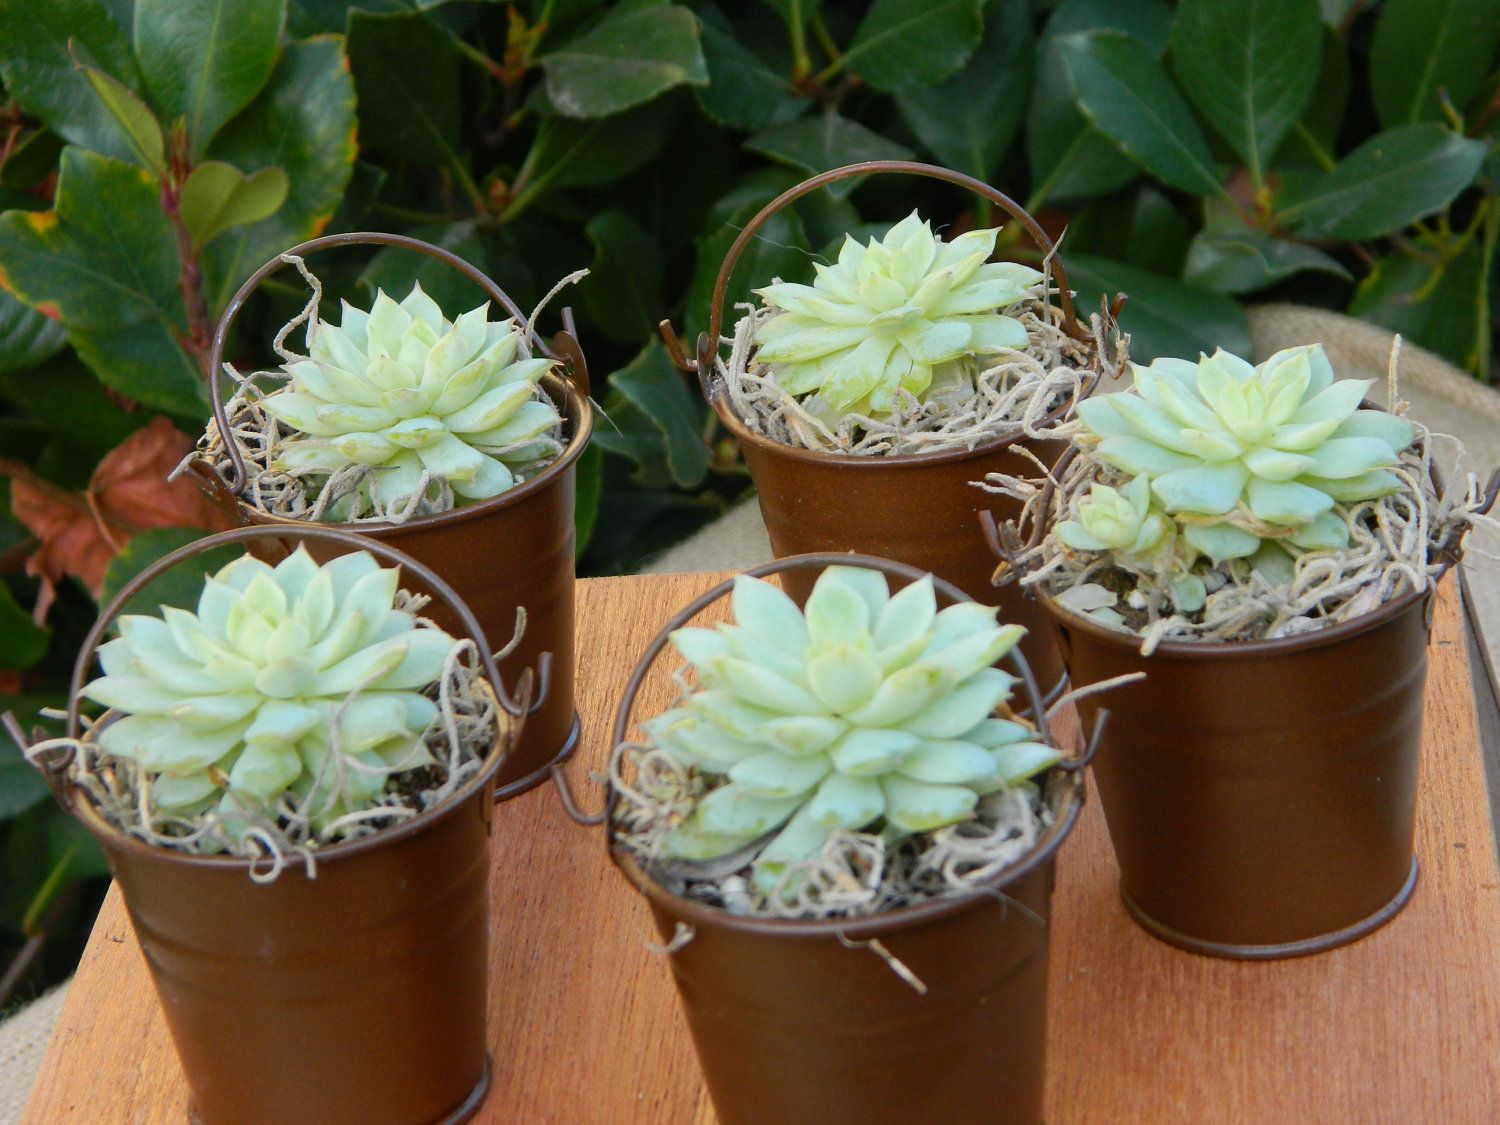 Succulent Wedding Favor, Succulent Bridal Shower Favor, Rustic Wedding Favor, Succulent Plants, Garden Party Favor, Mini Succulent. $36.00, via Etsy.